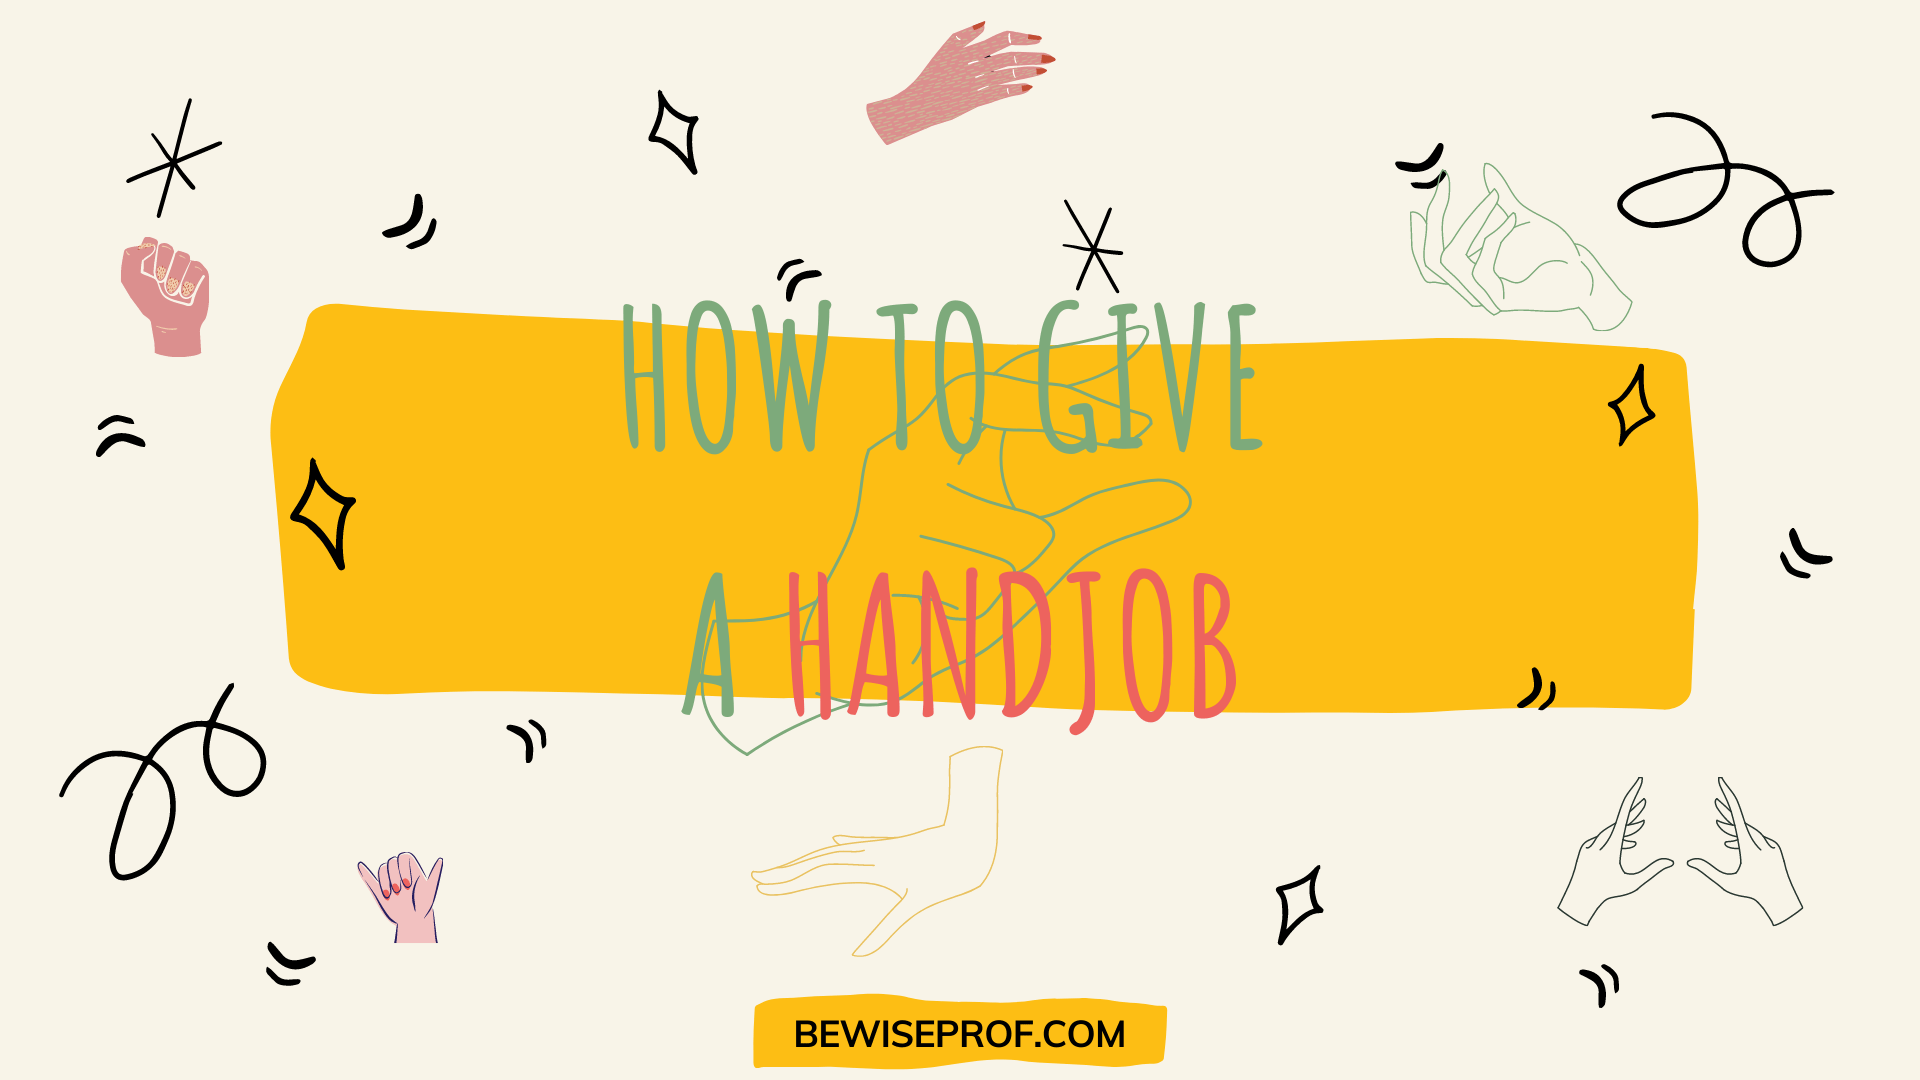 How To Give A Handjob